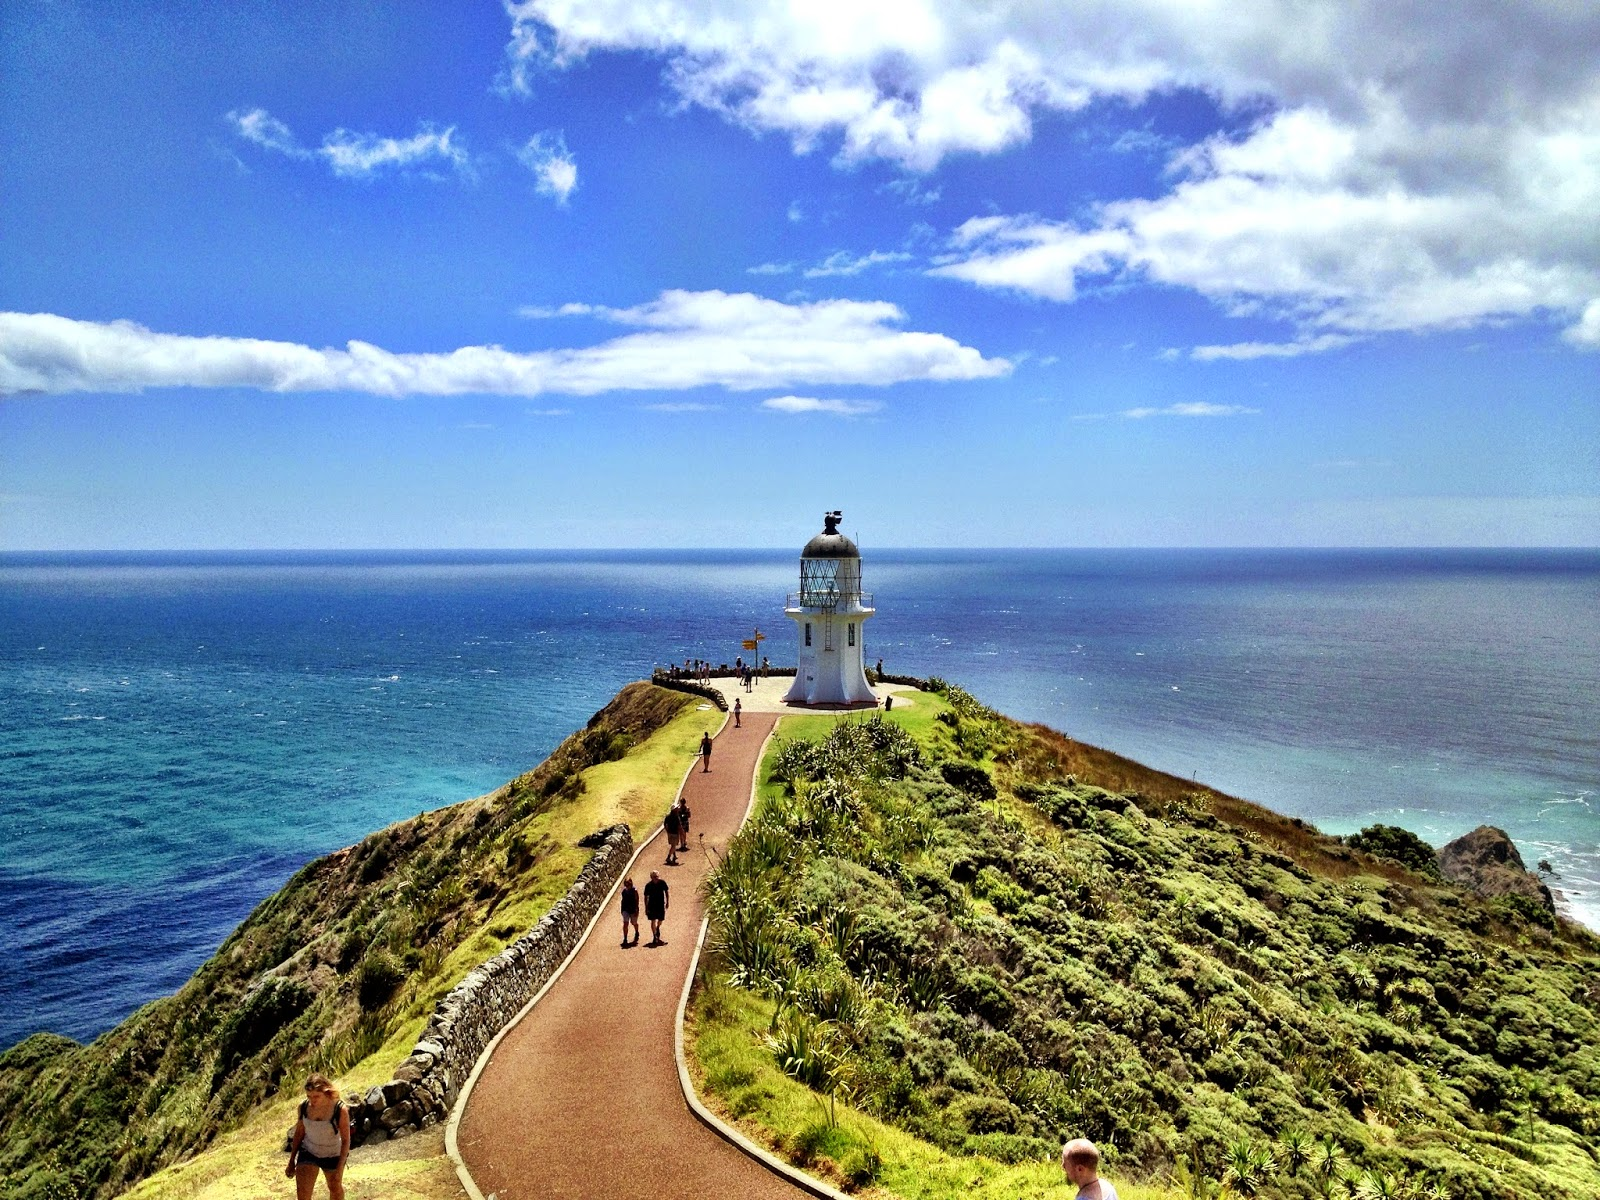 Cape Reinga - the most Northerly point of New Zealand